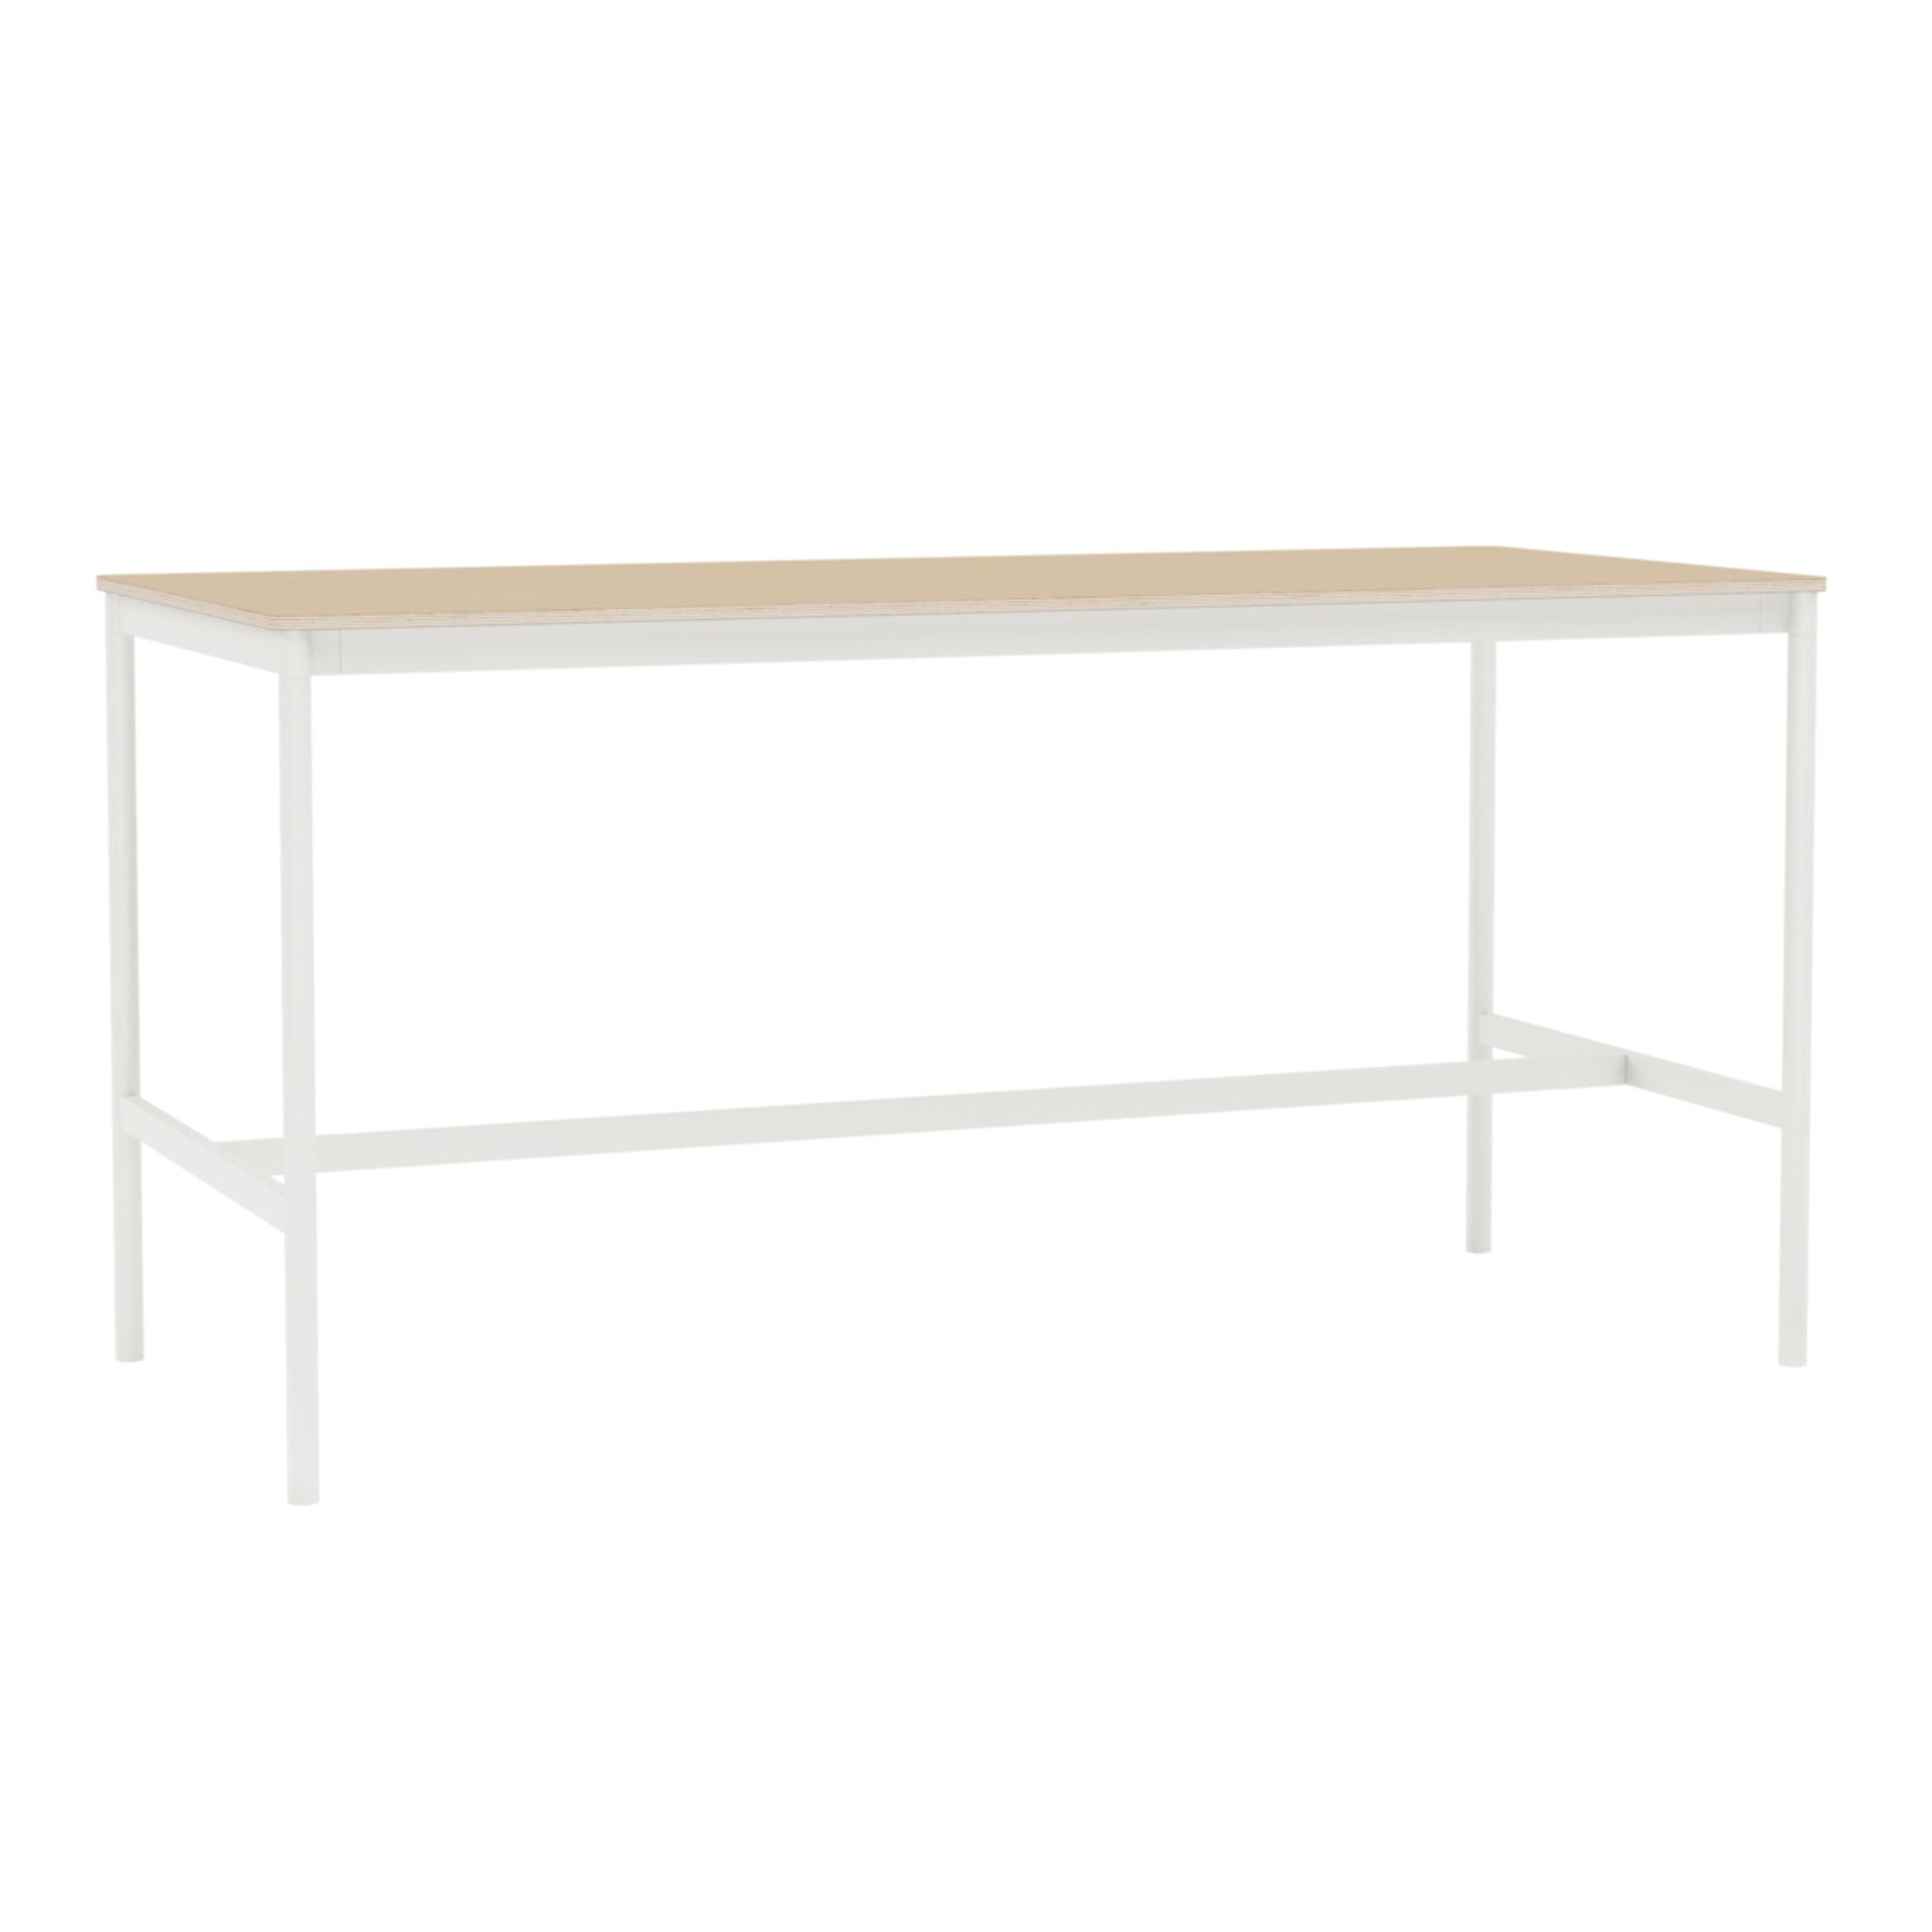 Muuto Base High Table 190x85 h:95cm , Lacquered Oak Veneer/Plywood/White